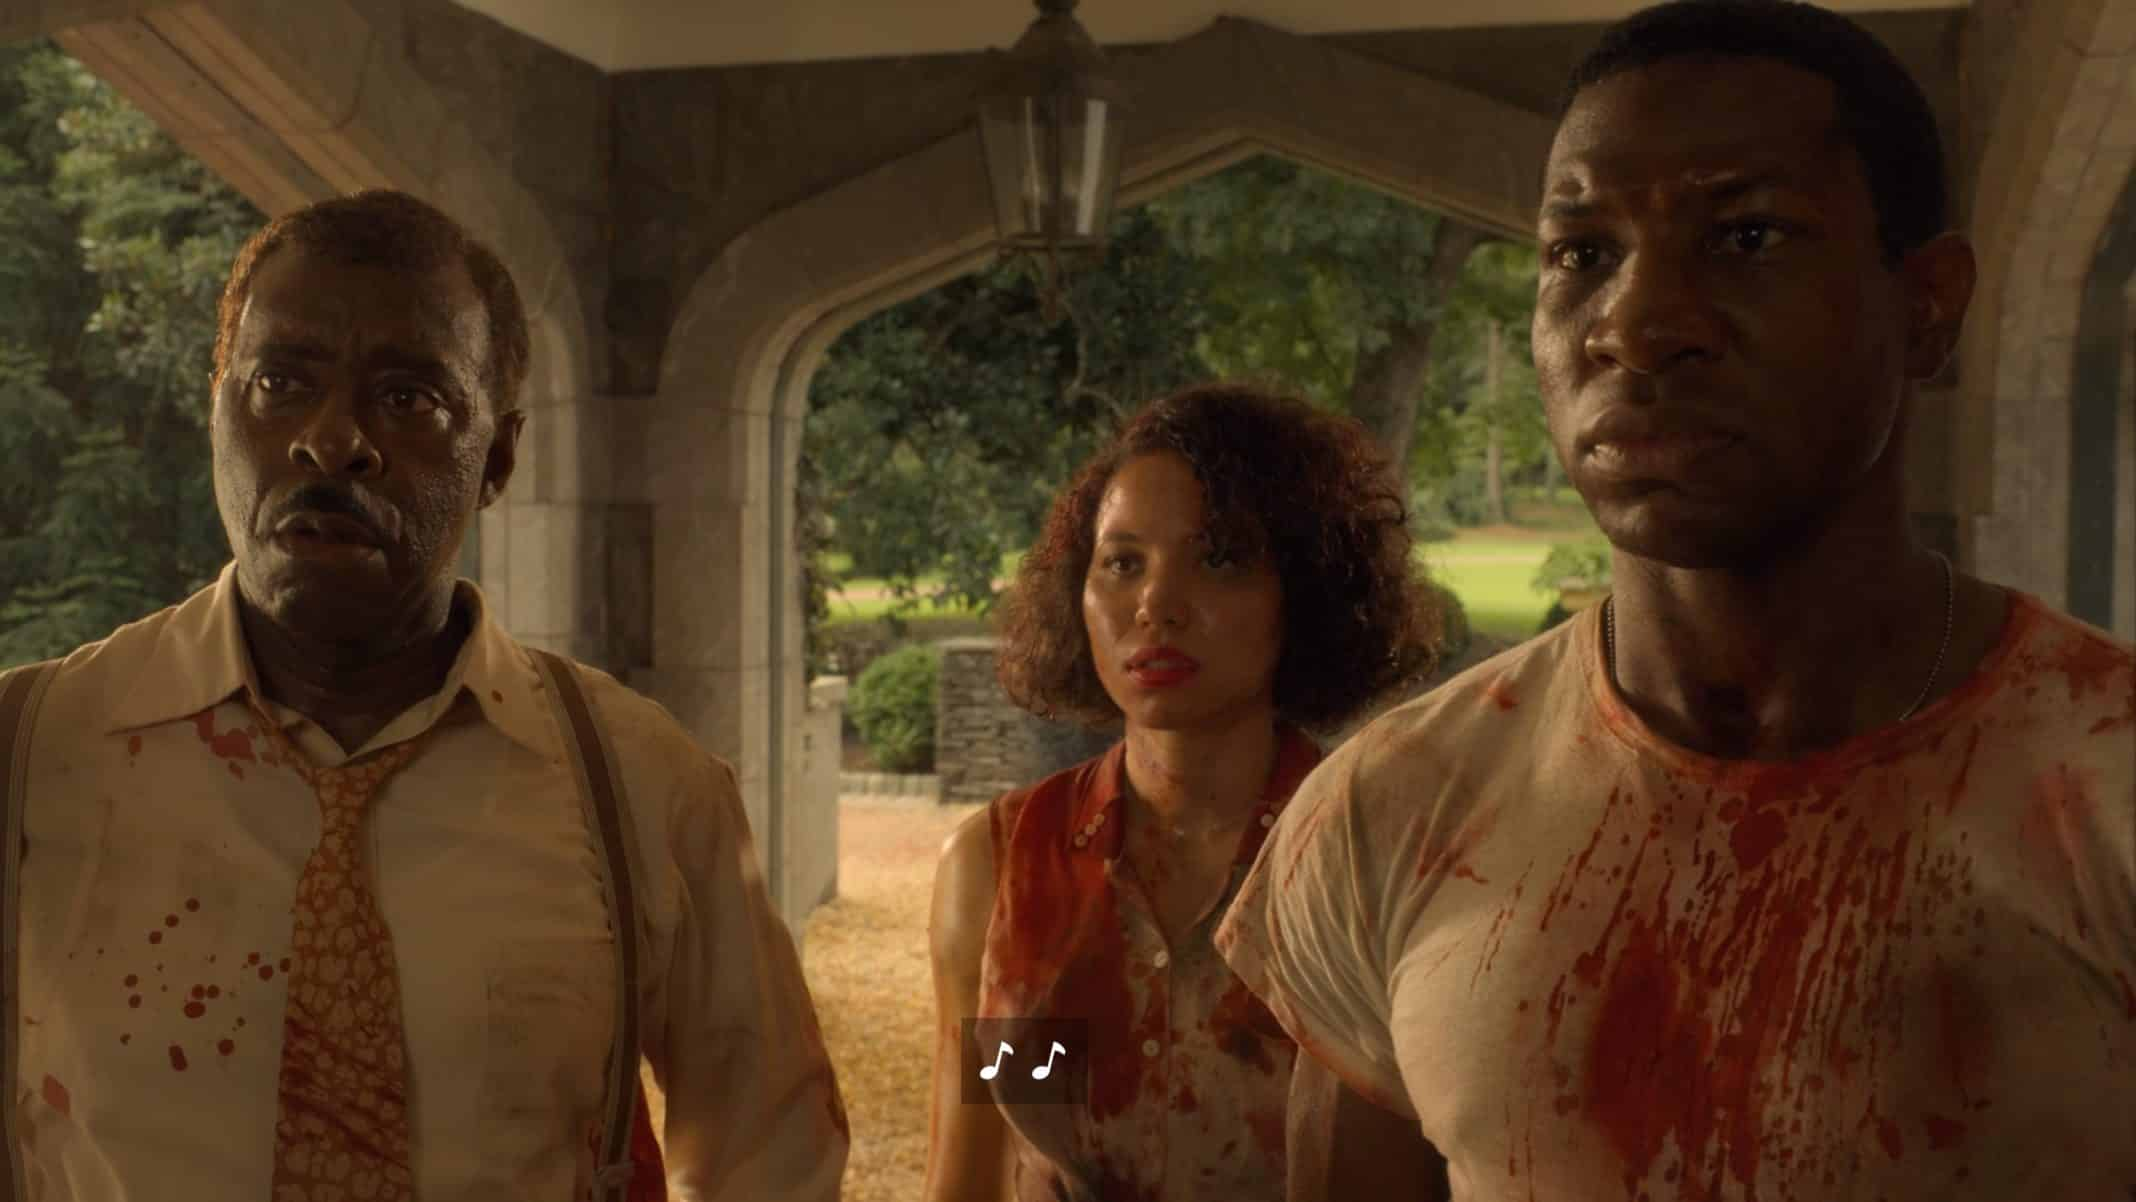 Uncle George (Courtney B. Vance), Letitia (Jurnee Smollett), and Atticus (Jonathan Majors) with blood on their clothes.